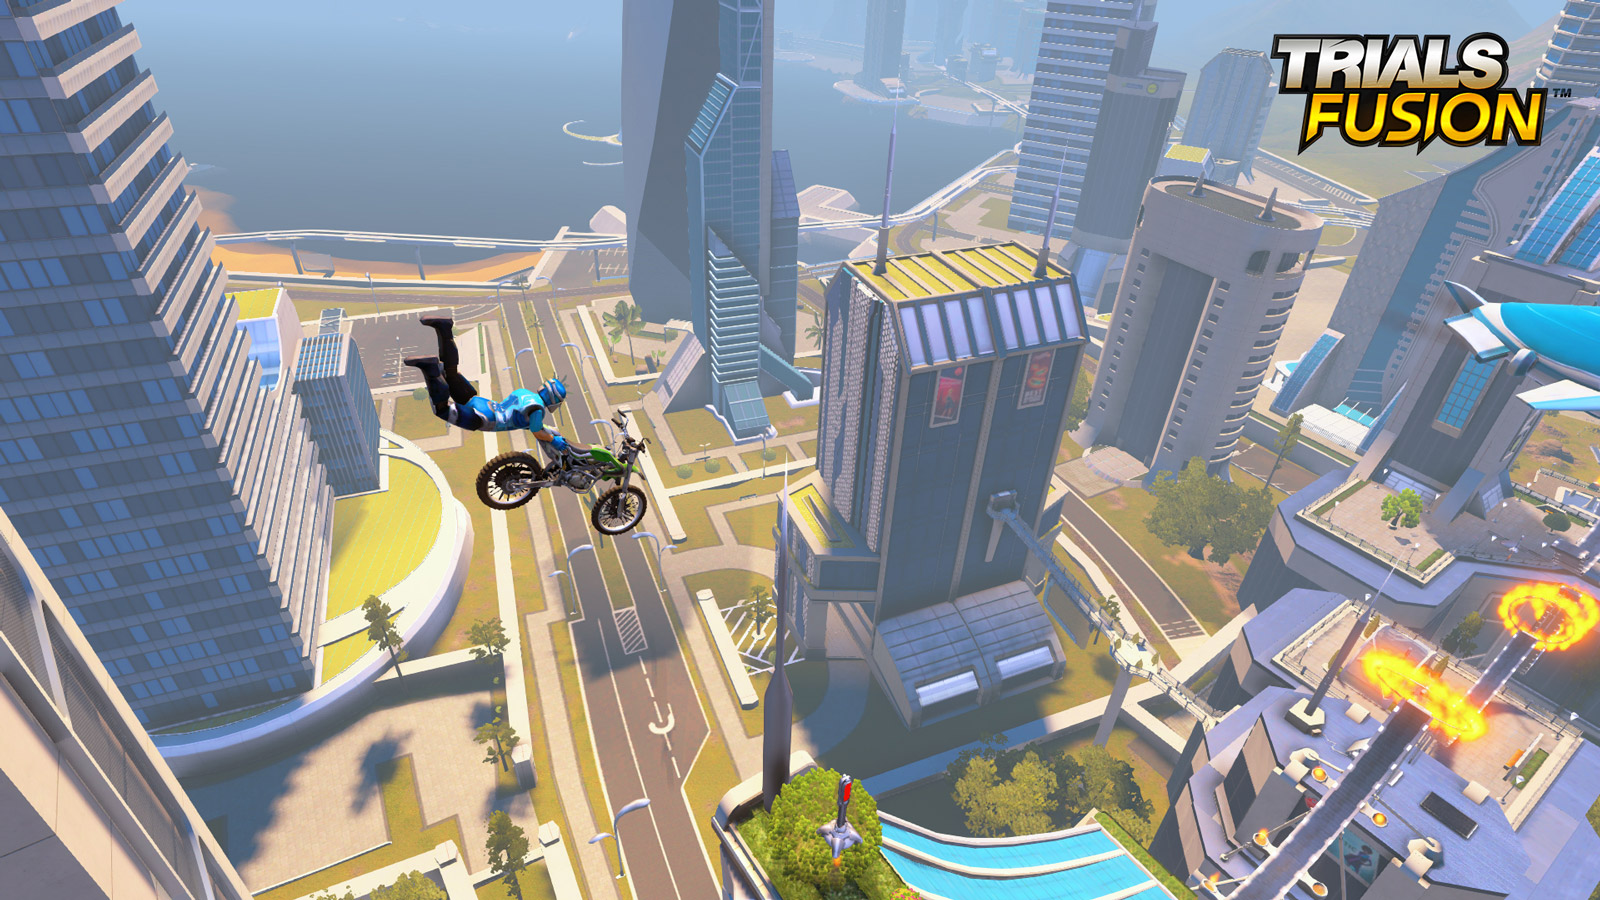 Free Trials Fusion Wallpaper in 1600x900